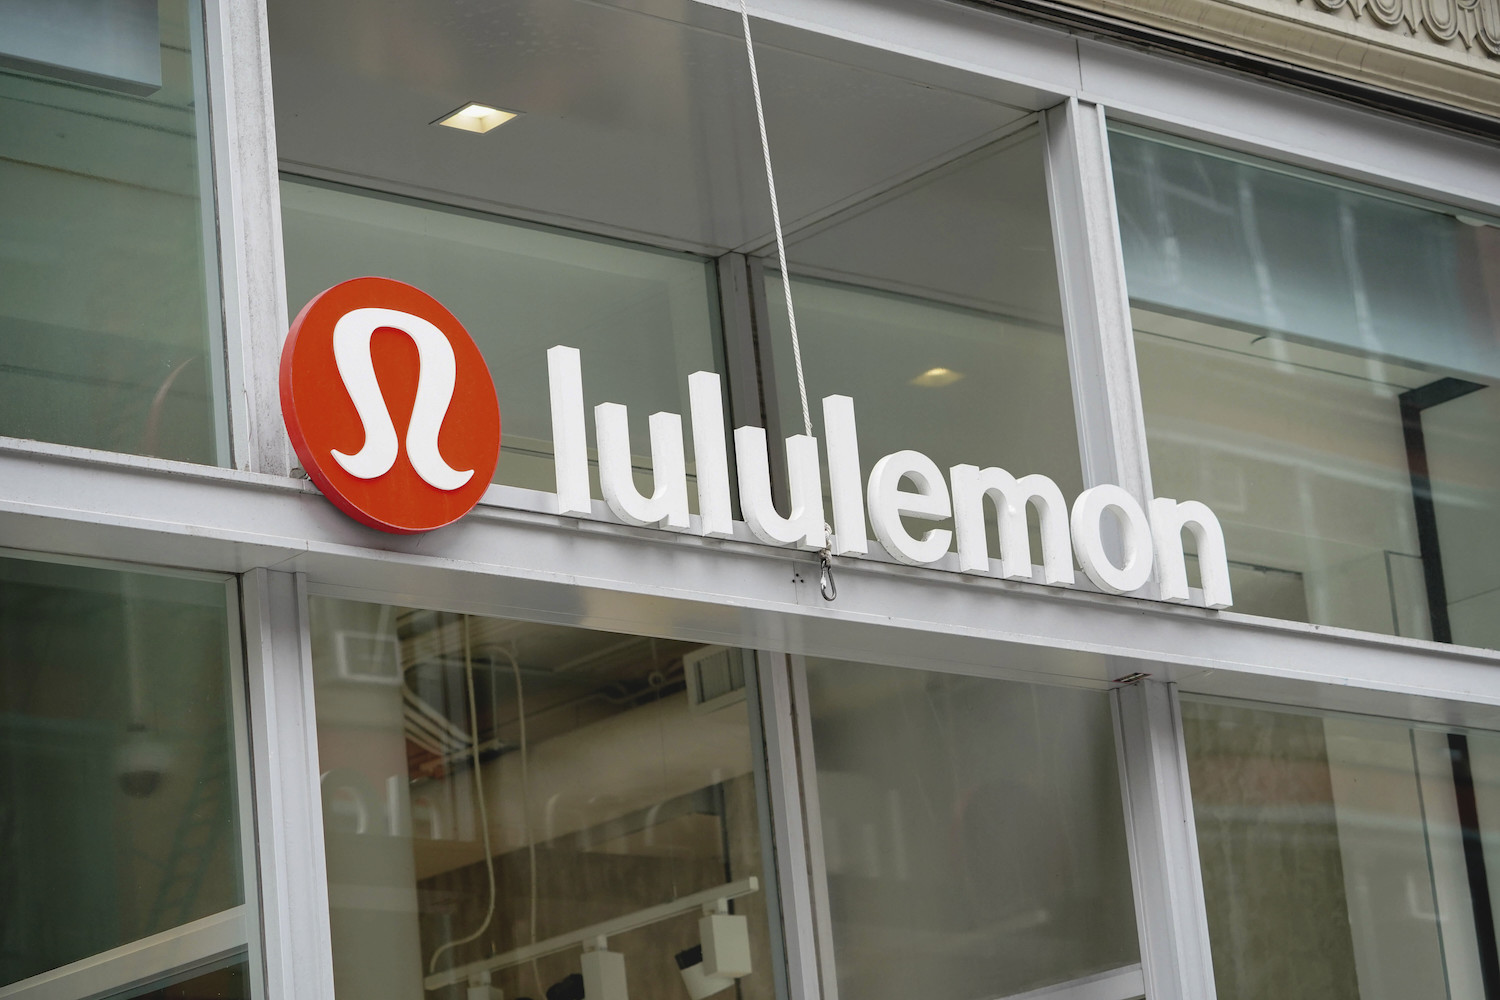 Effective Sept. 27, 2021, those who are currently employed in Lululemon stores or at its Guest Education Center (GEC) in North America, as well as individuals who are hired from this point forward, will receive a new minimum of $15 or $17 per hour depending on their role and the market.